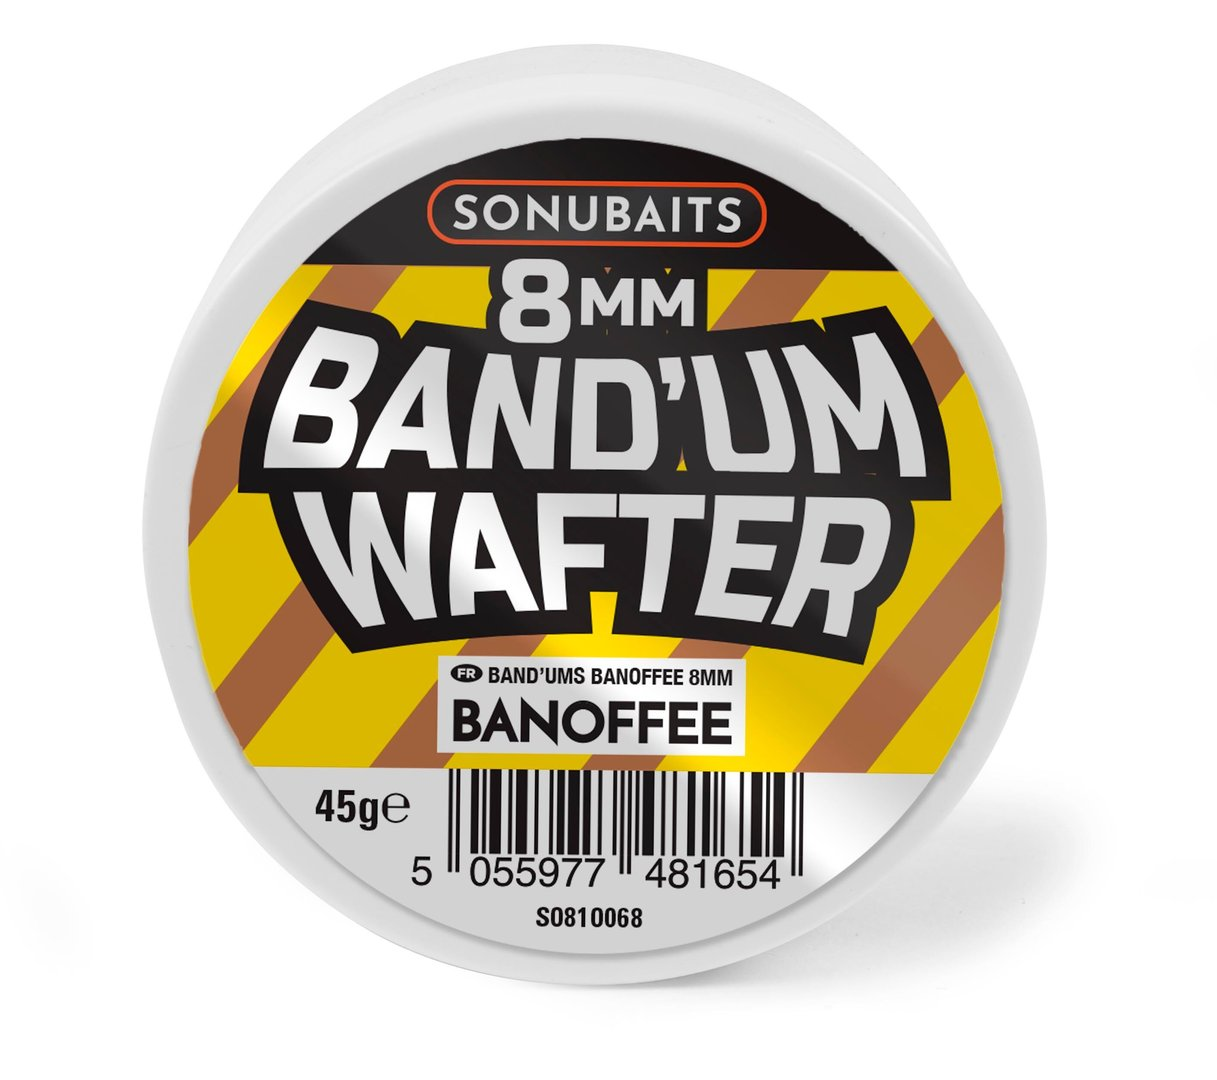 Sonubaits Band'um Wafter - Banoffee - 8mm